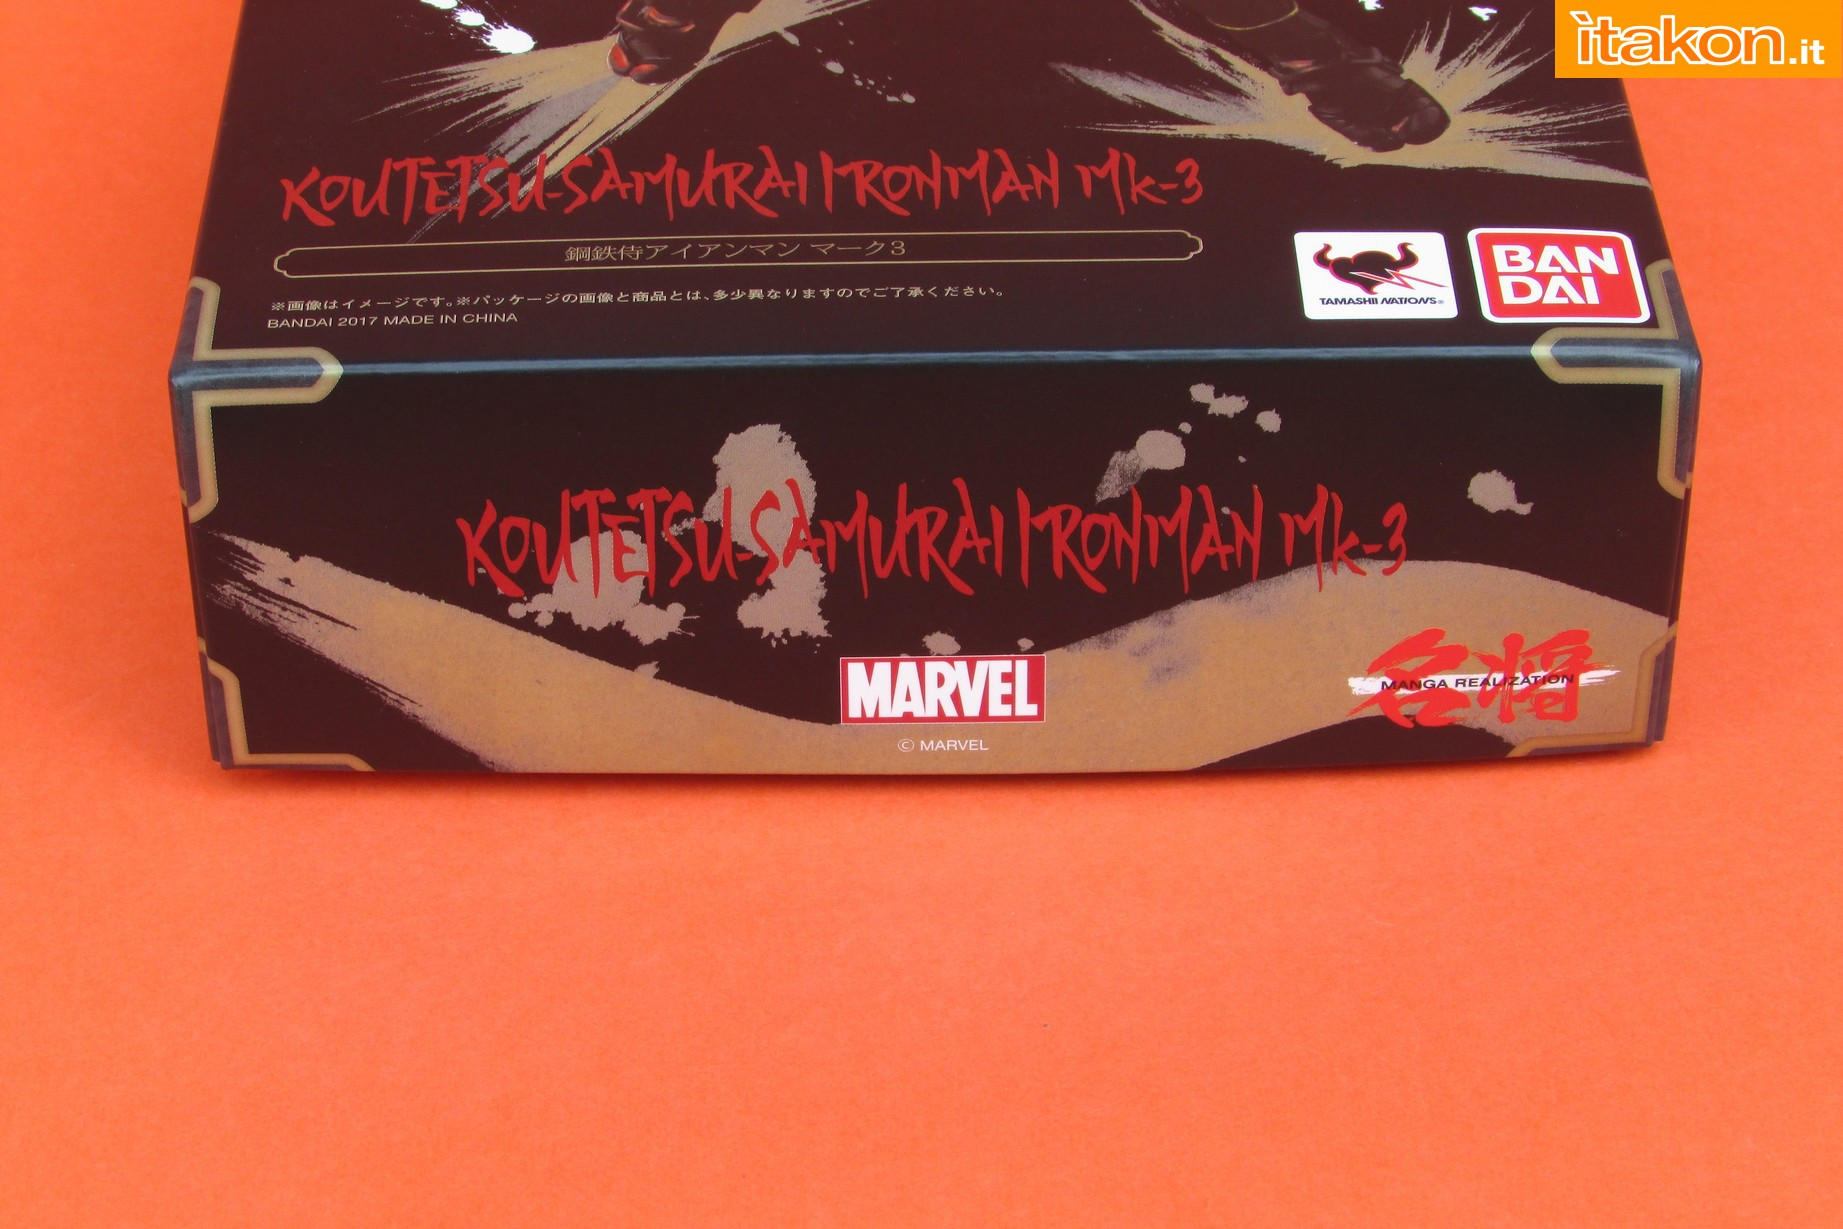 Link a Marvel Comics Koutetsu Samurai Iron Man Mark 3 Meishou MANGA REALIZATION review Bandai Itakon.it05